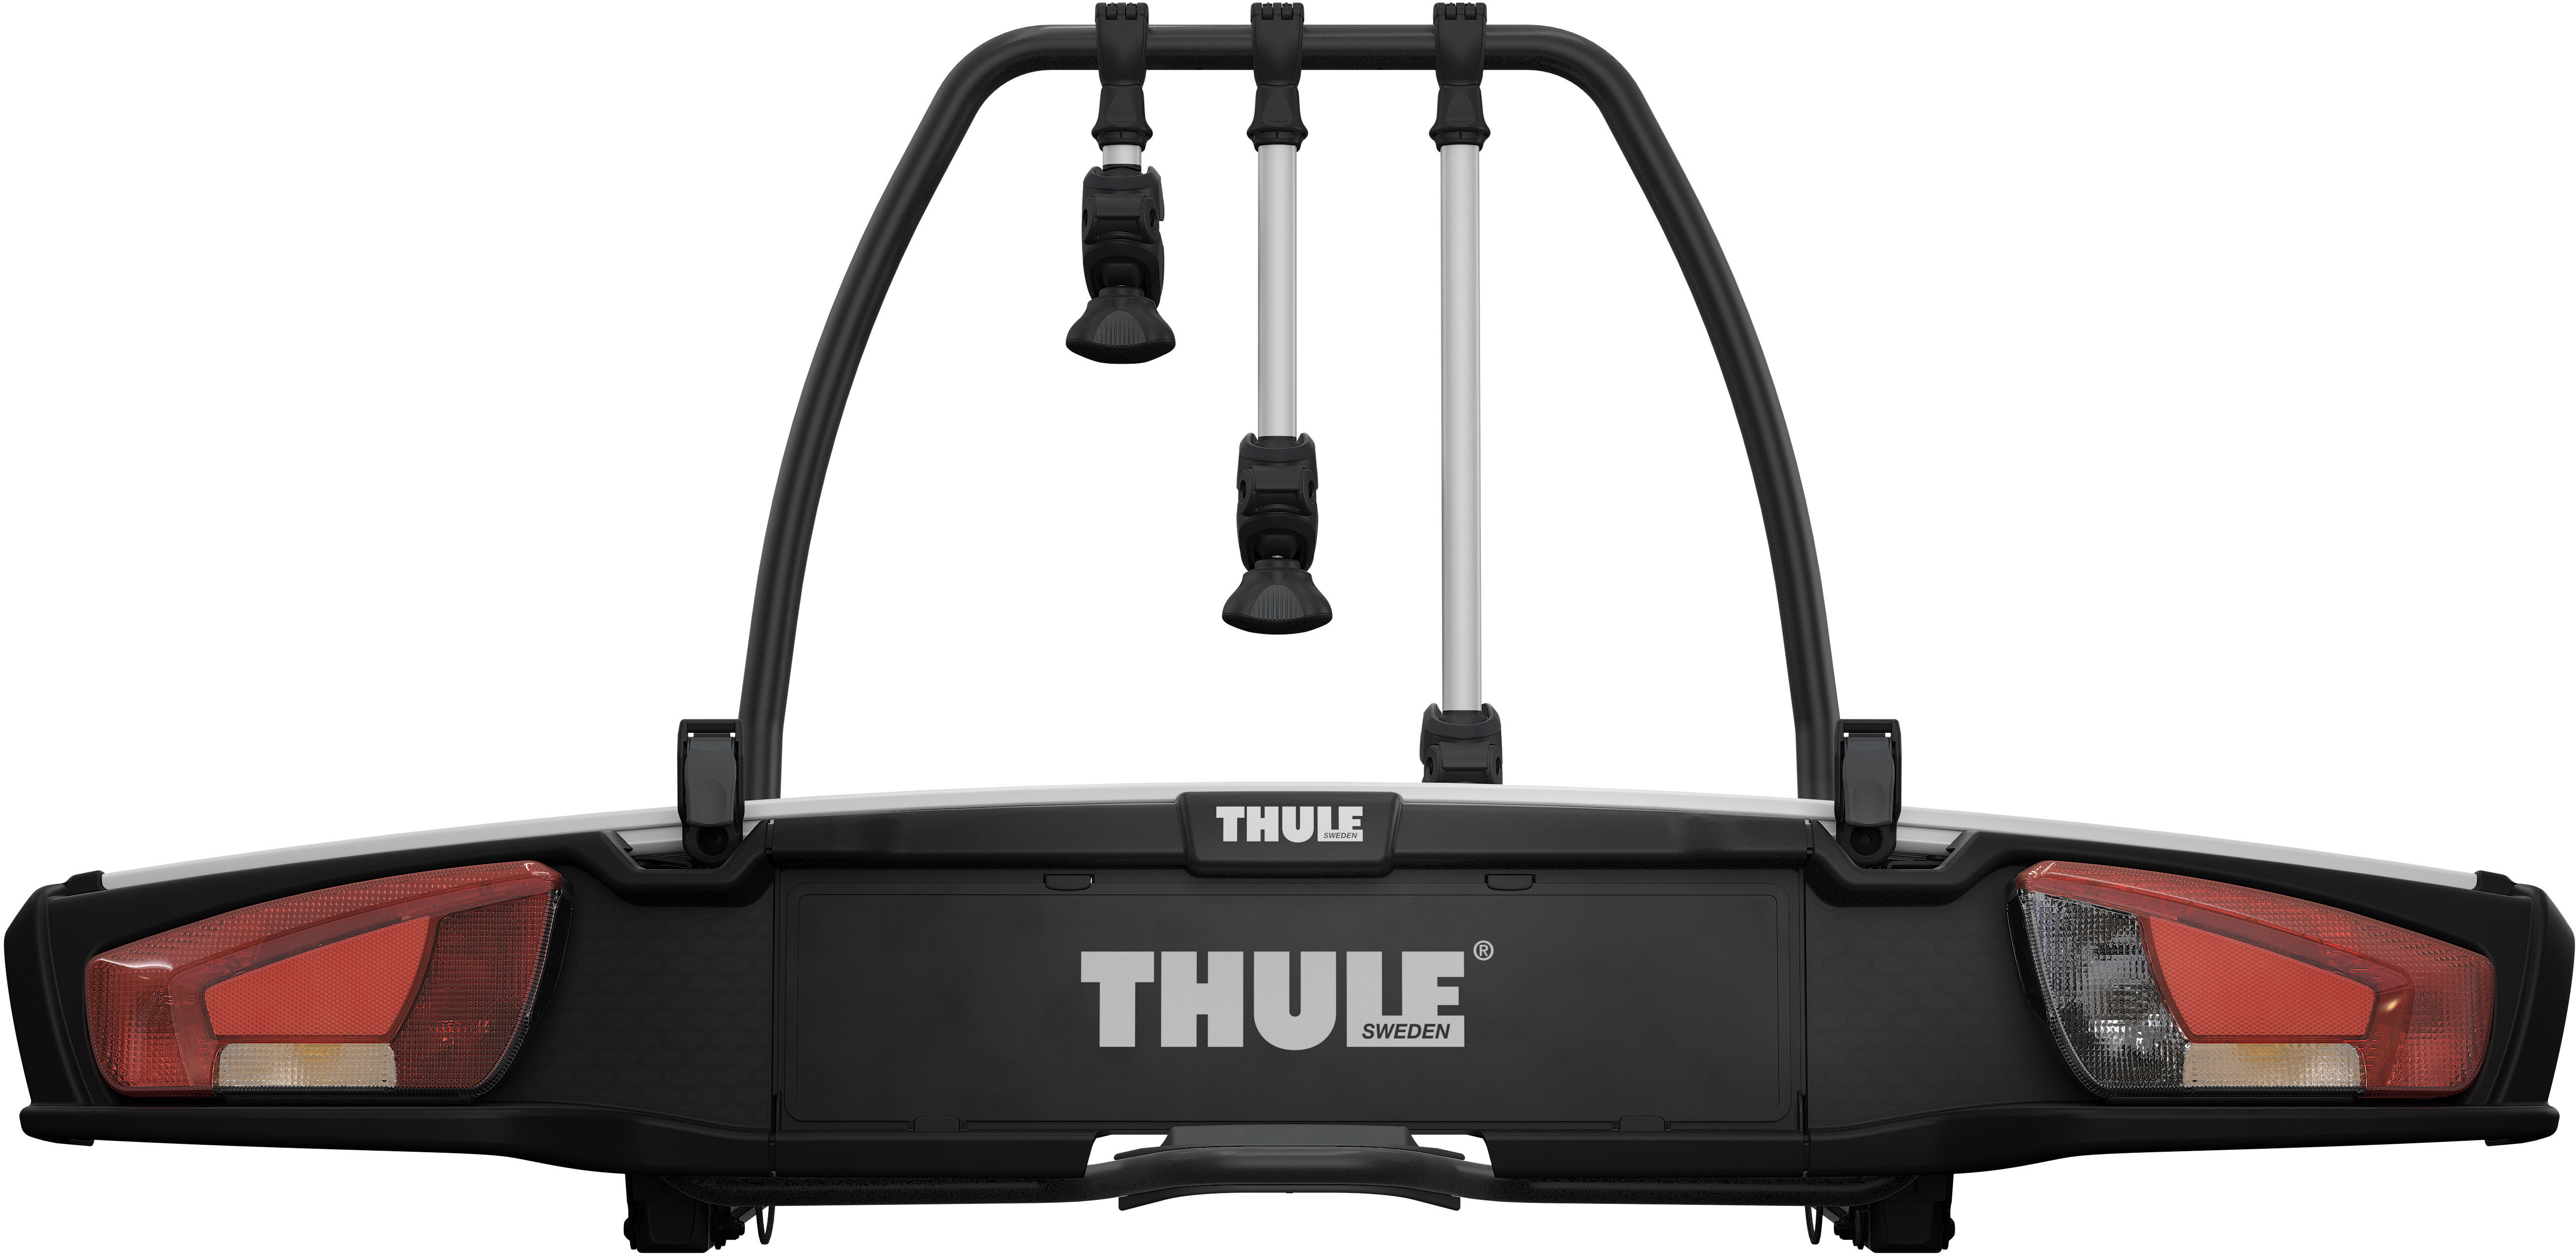 thule velospace xt fahrradtr ger f r 3 fahrr der online. Black Bedroom Furniture Sets. Home Design Ideas